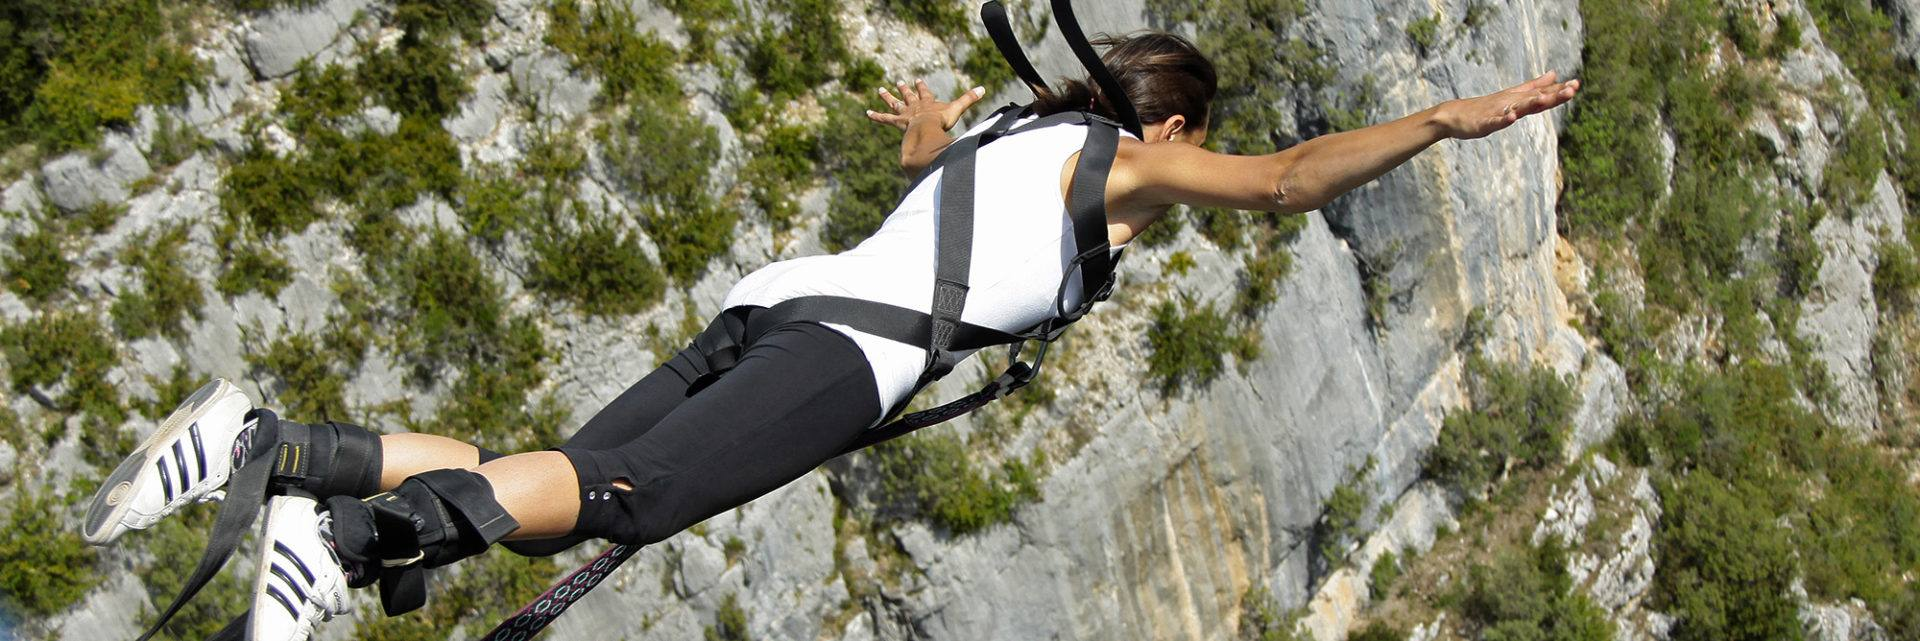 Bungee jumping in the Verdon